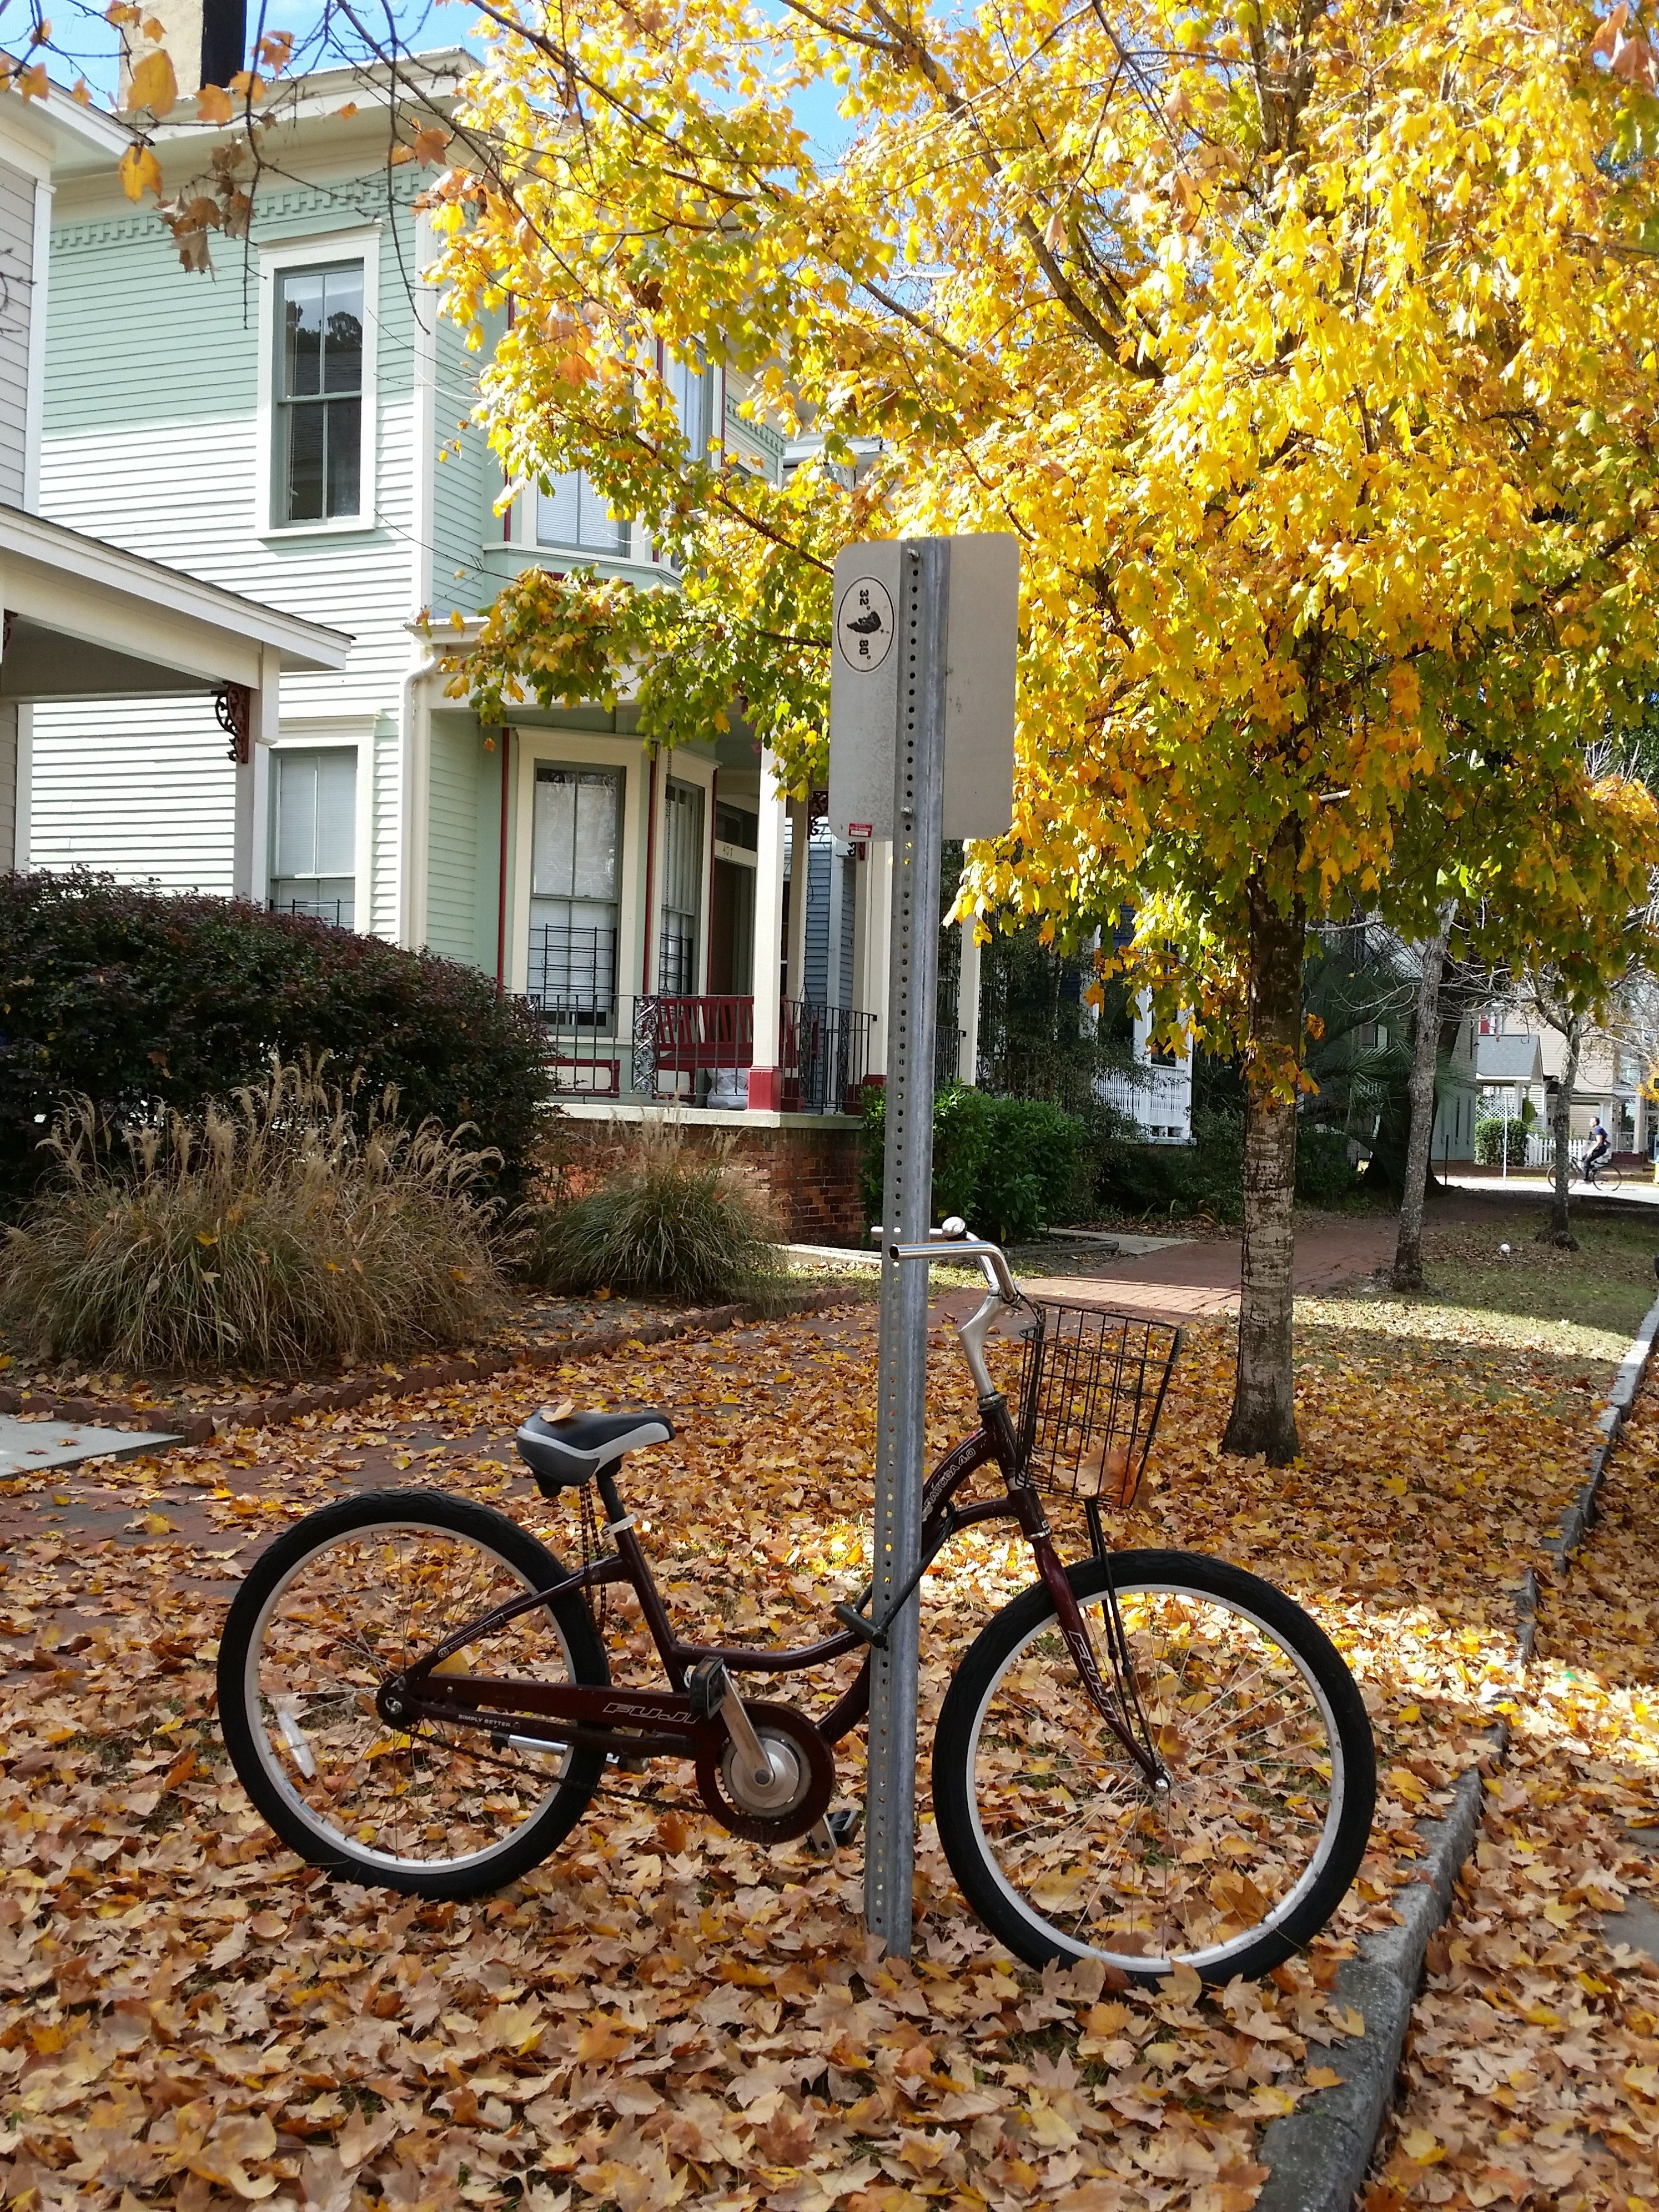 Beautiful late fall day in SAV...perfect weather for exploring by bike